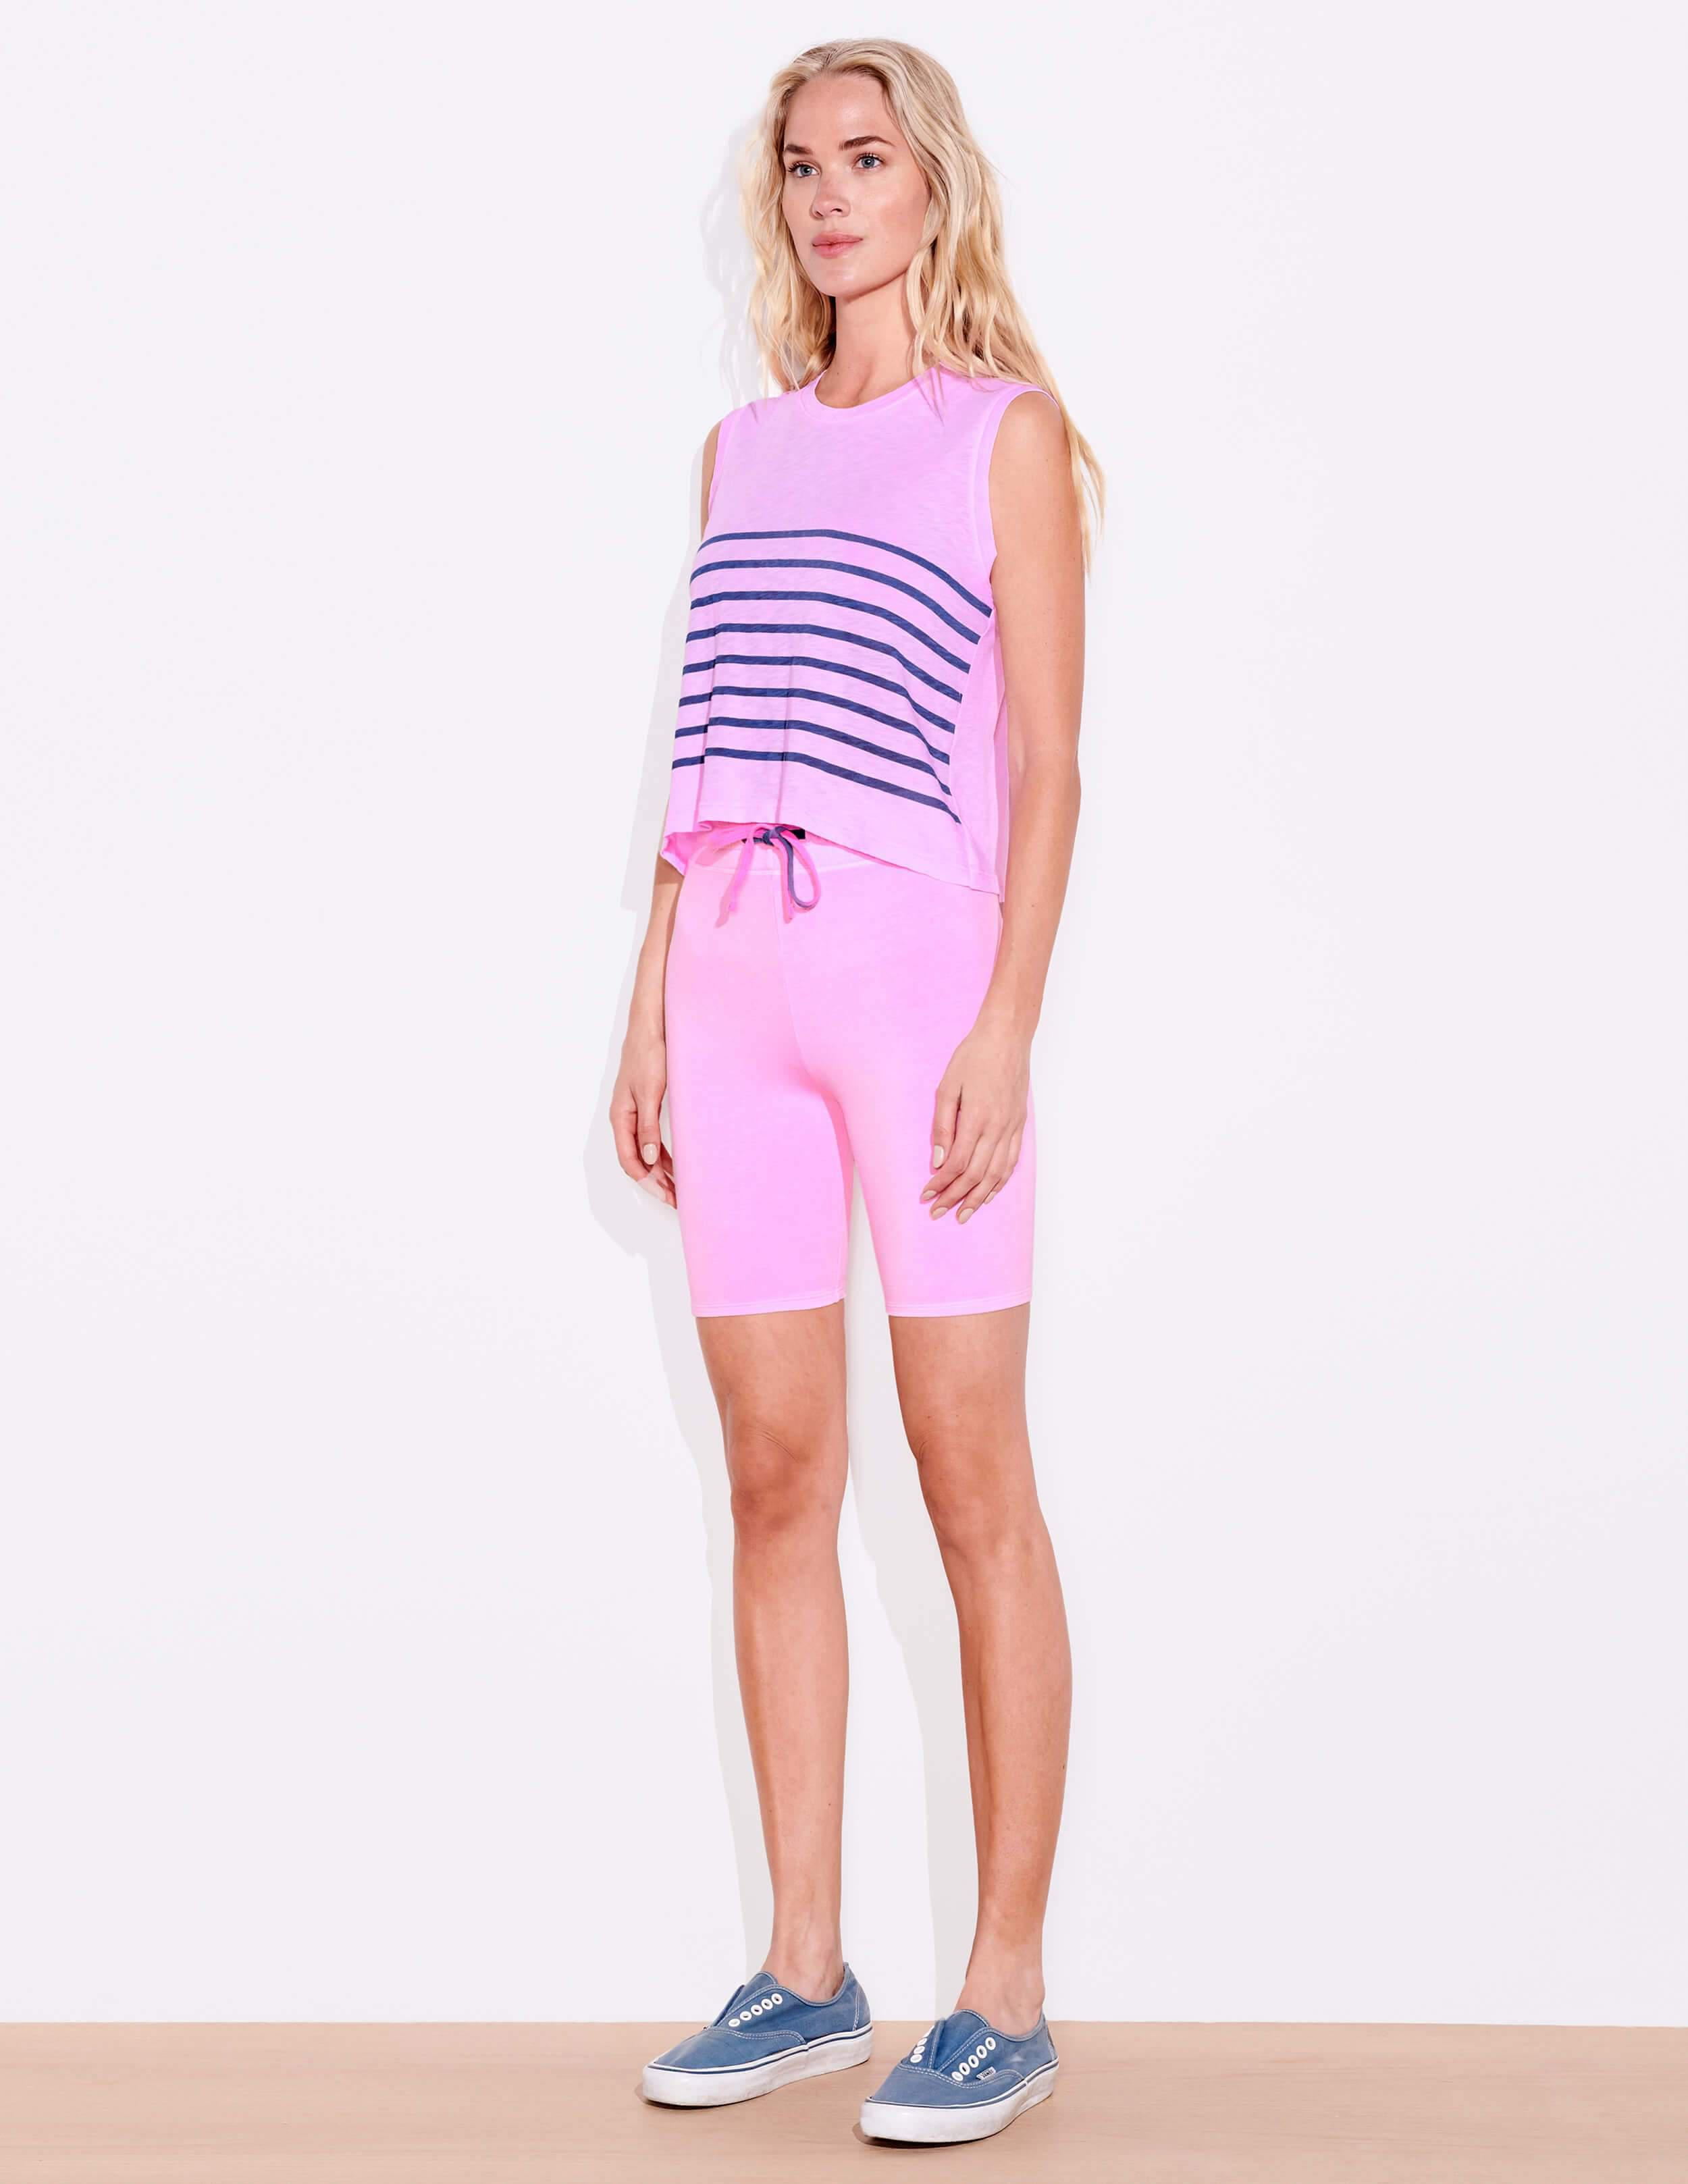 Blue Stripes Muscle Tee 2